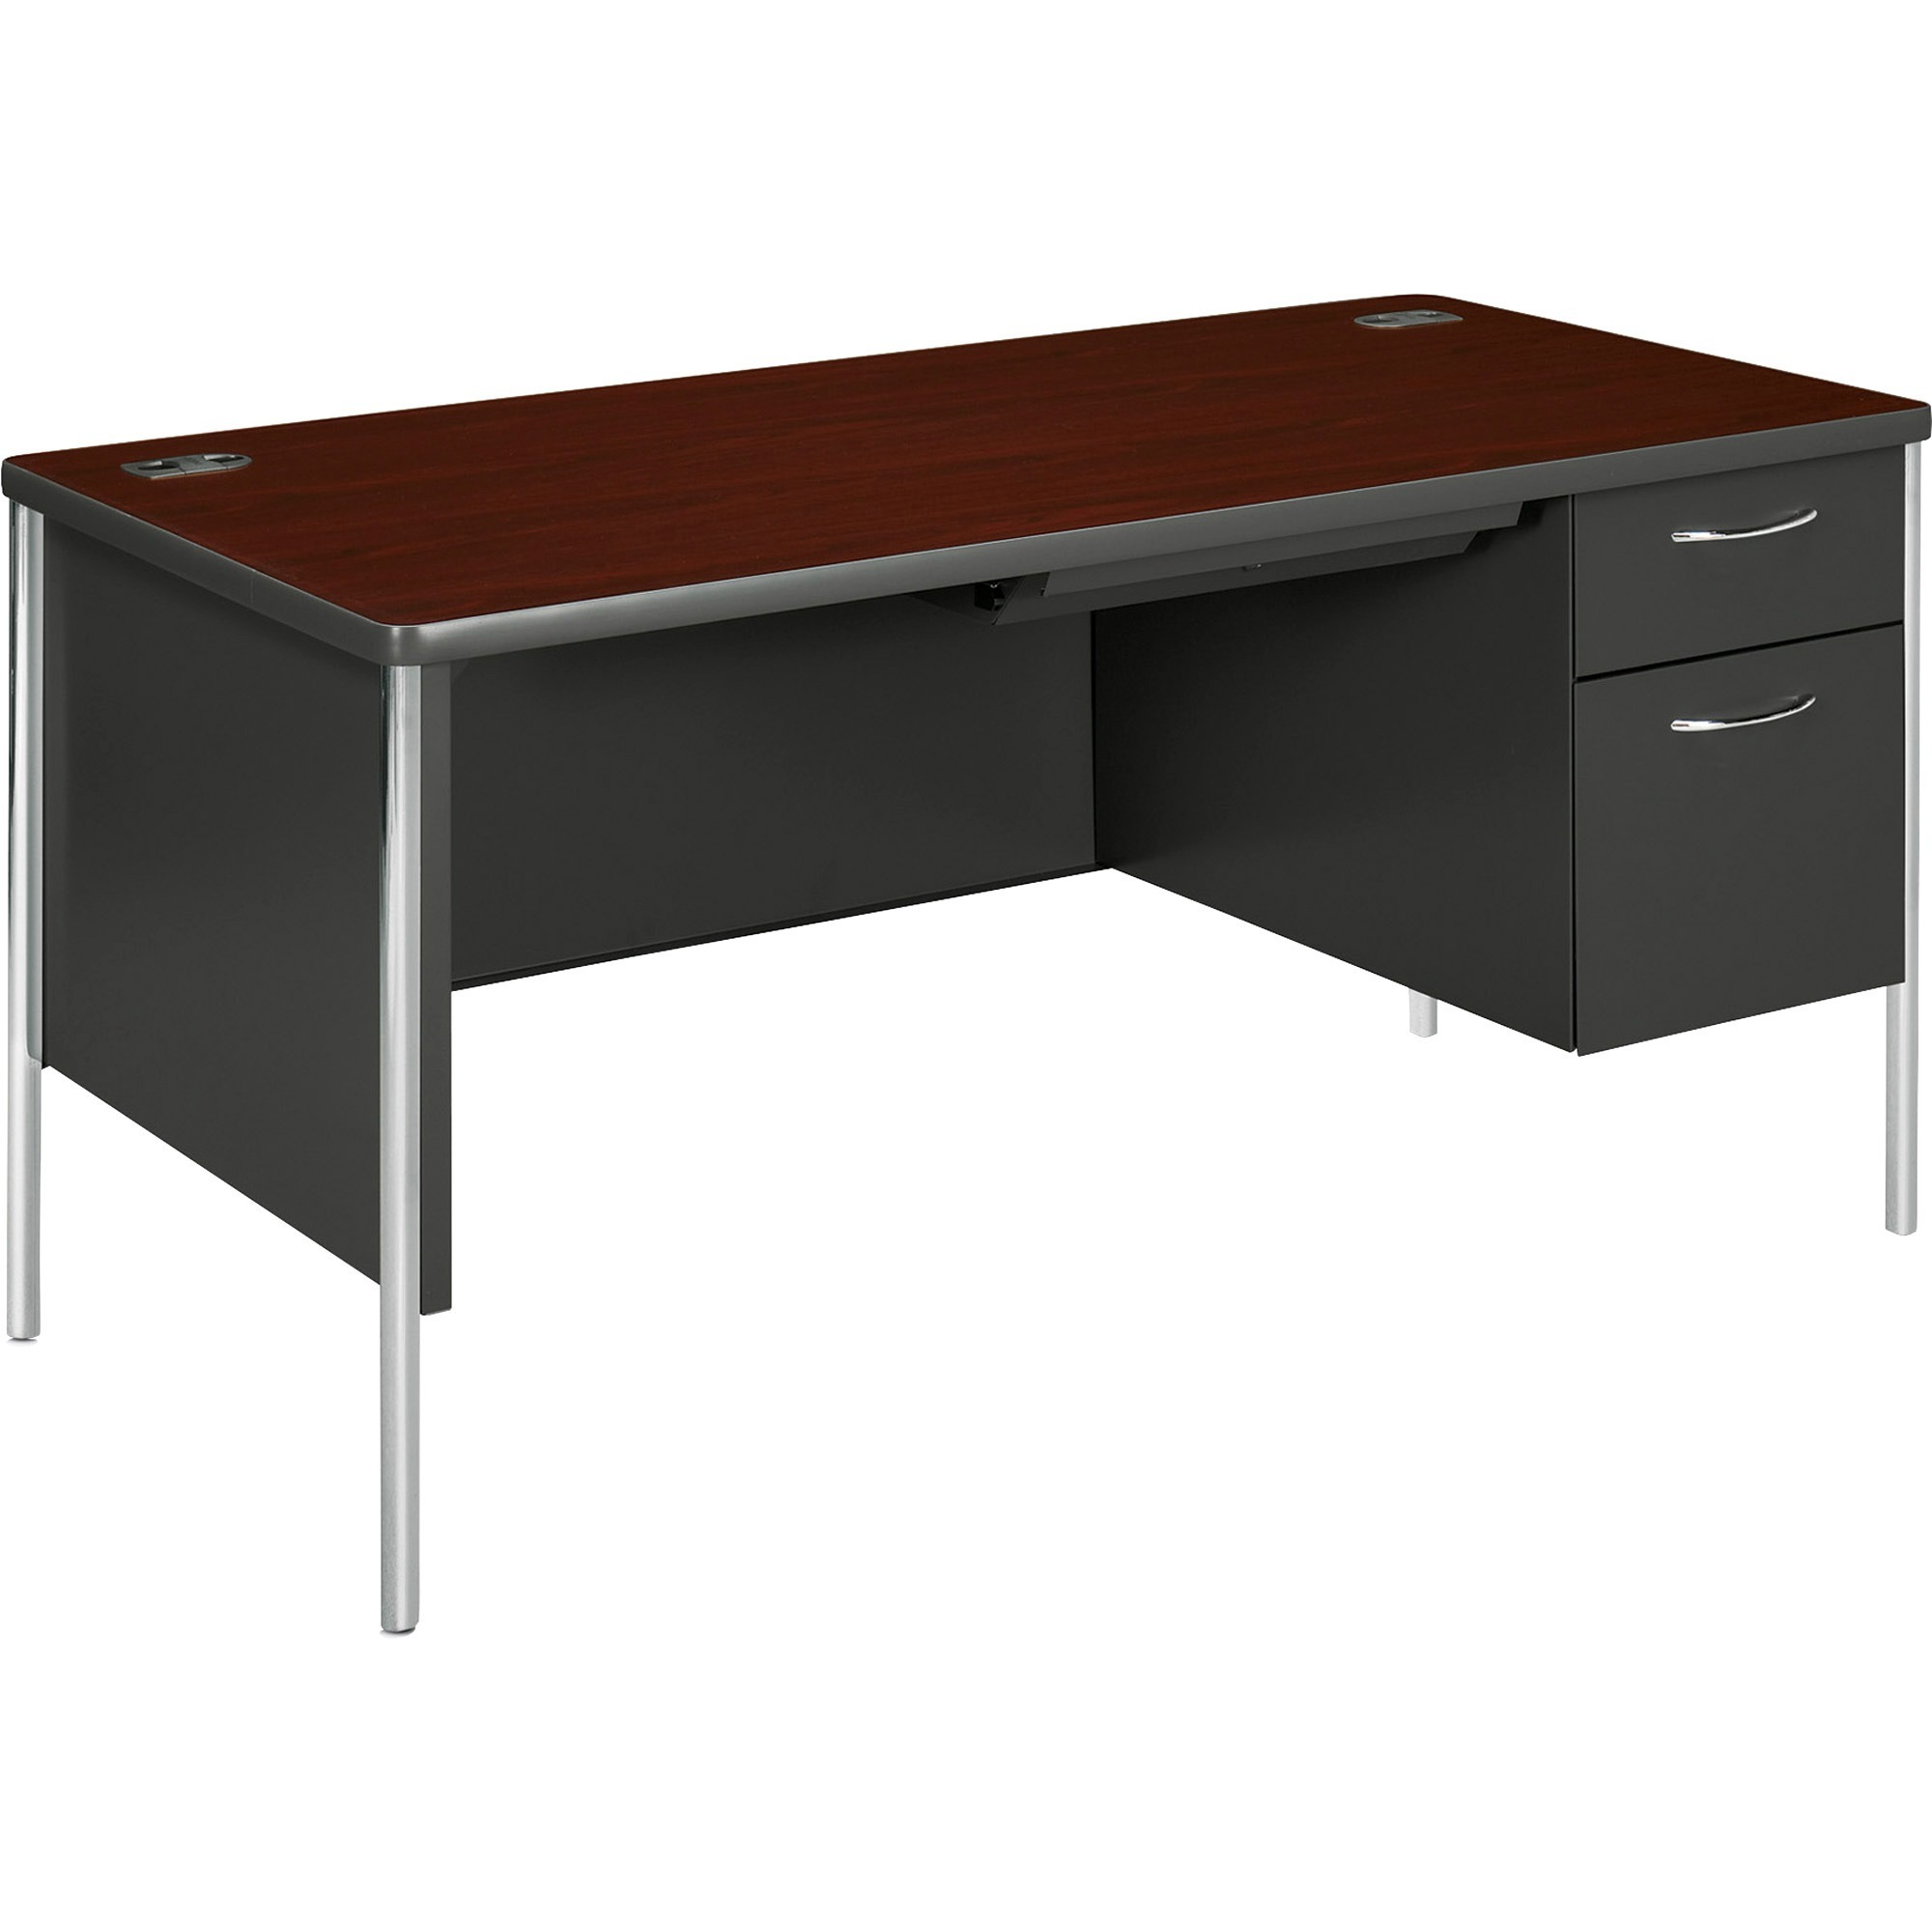 office pedestal single products a ped furniture box desk request quote file warehouse w